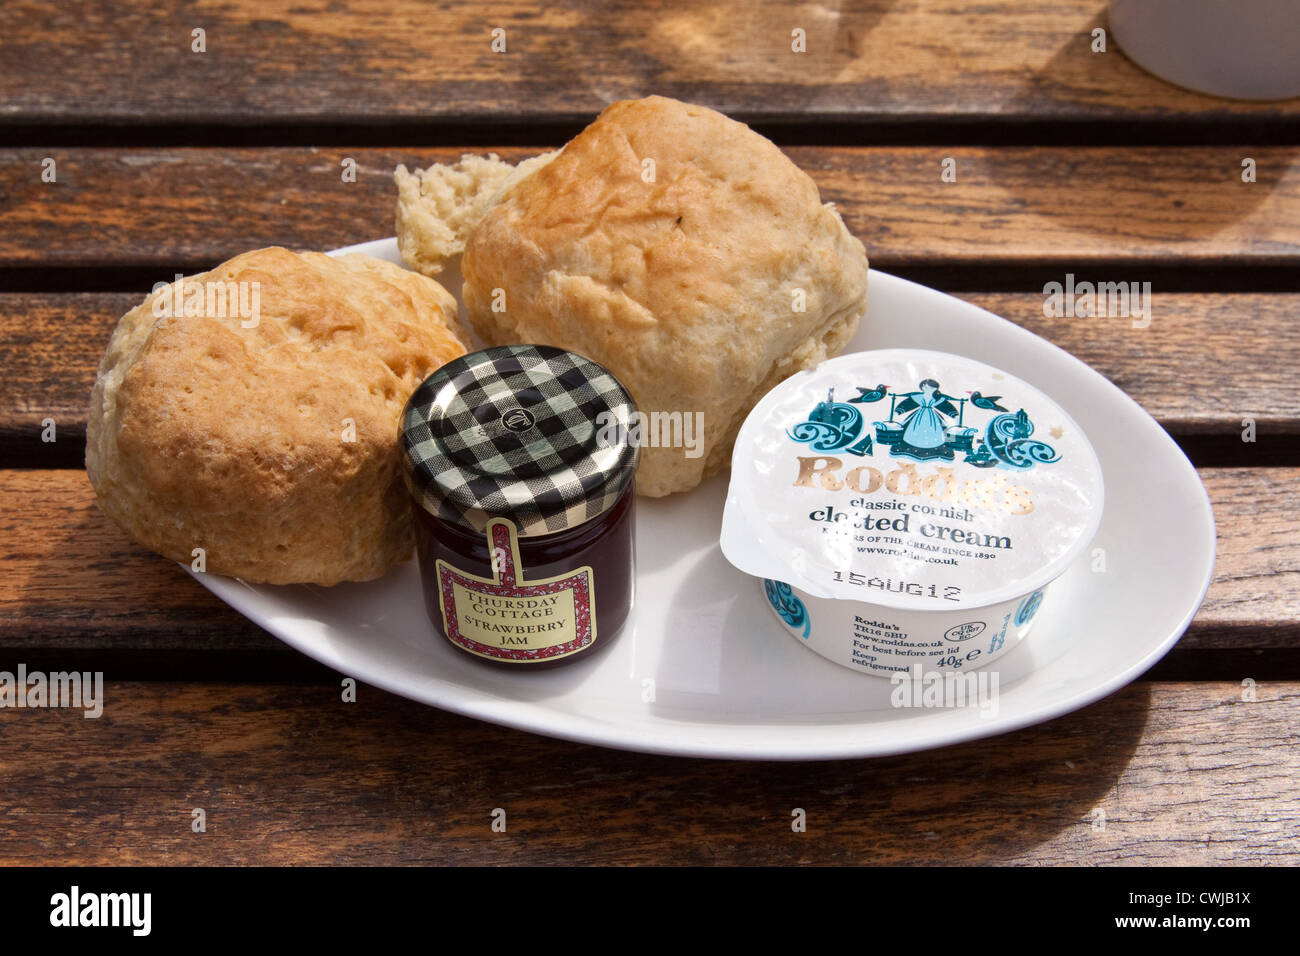 Cream Tea With Scones And Clotted Cream Cornwall England United Stock Photo Alamy